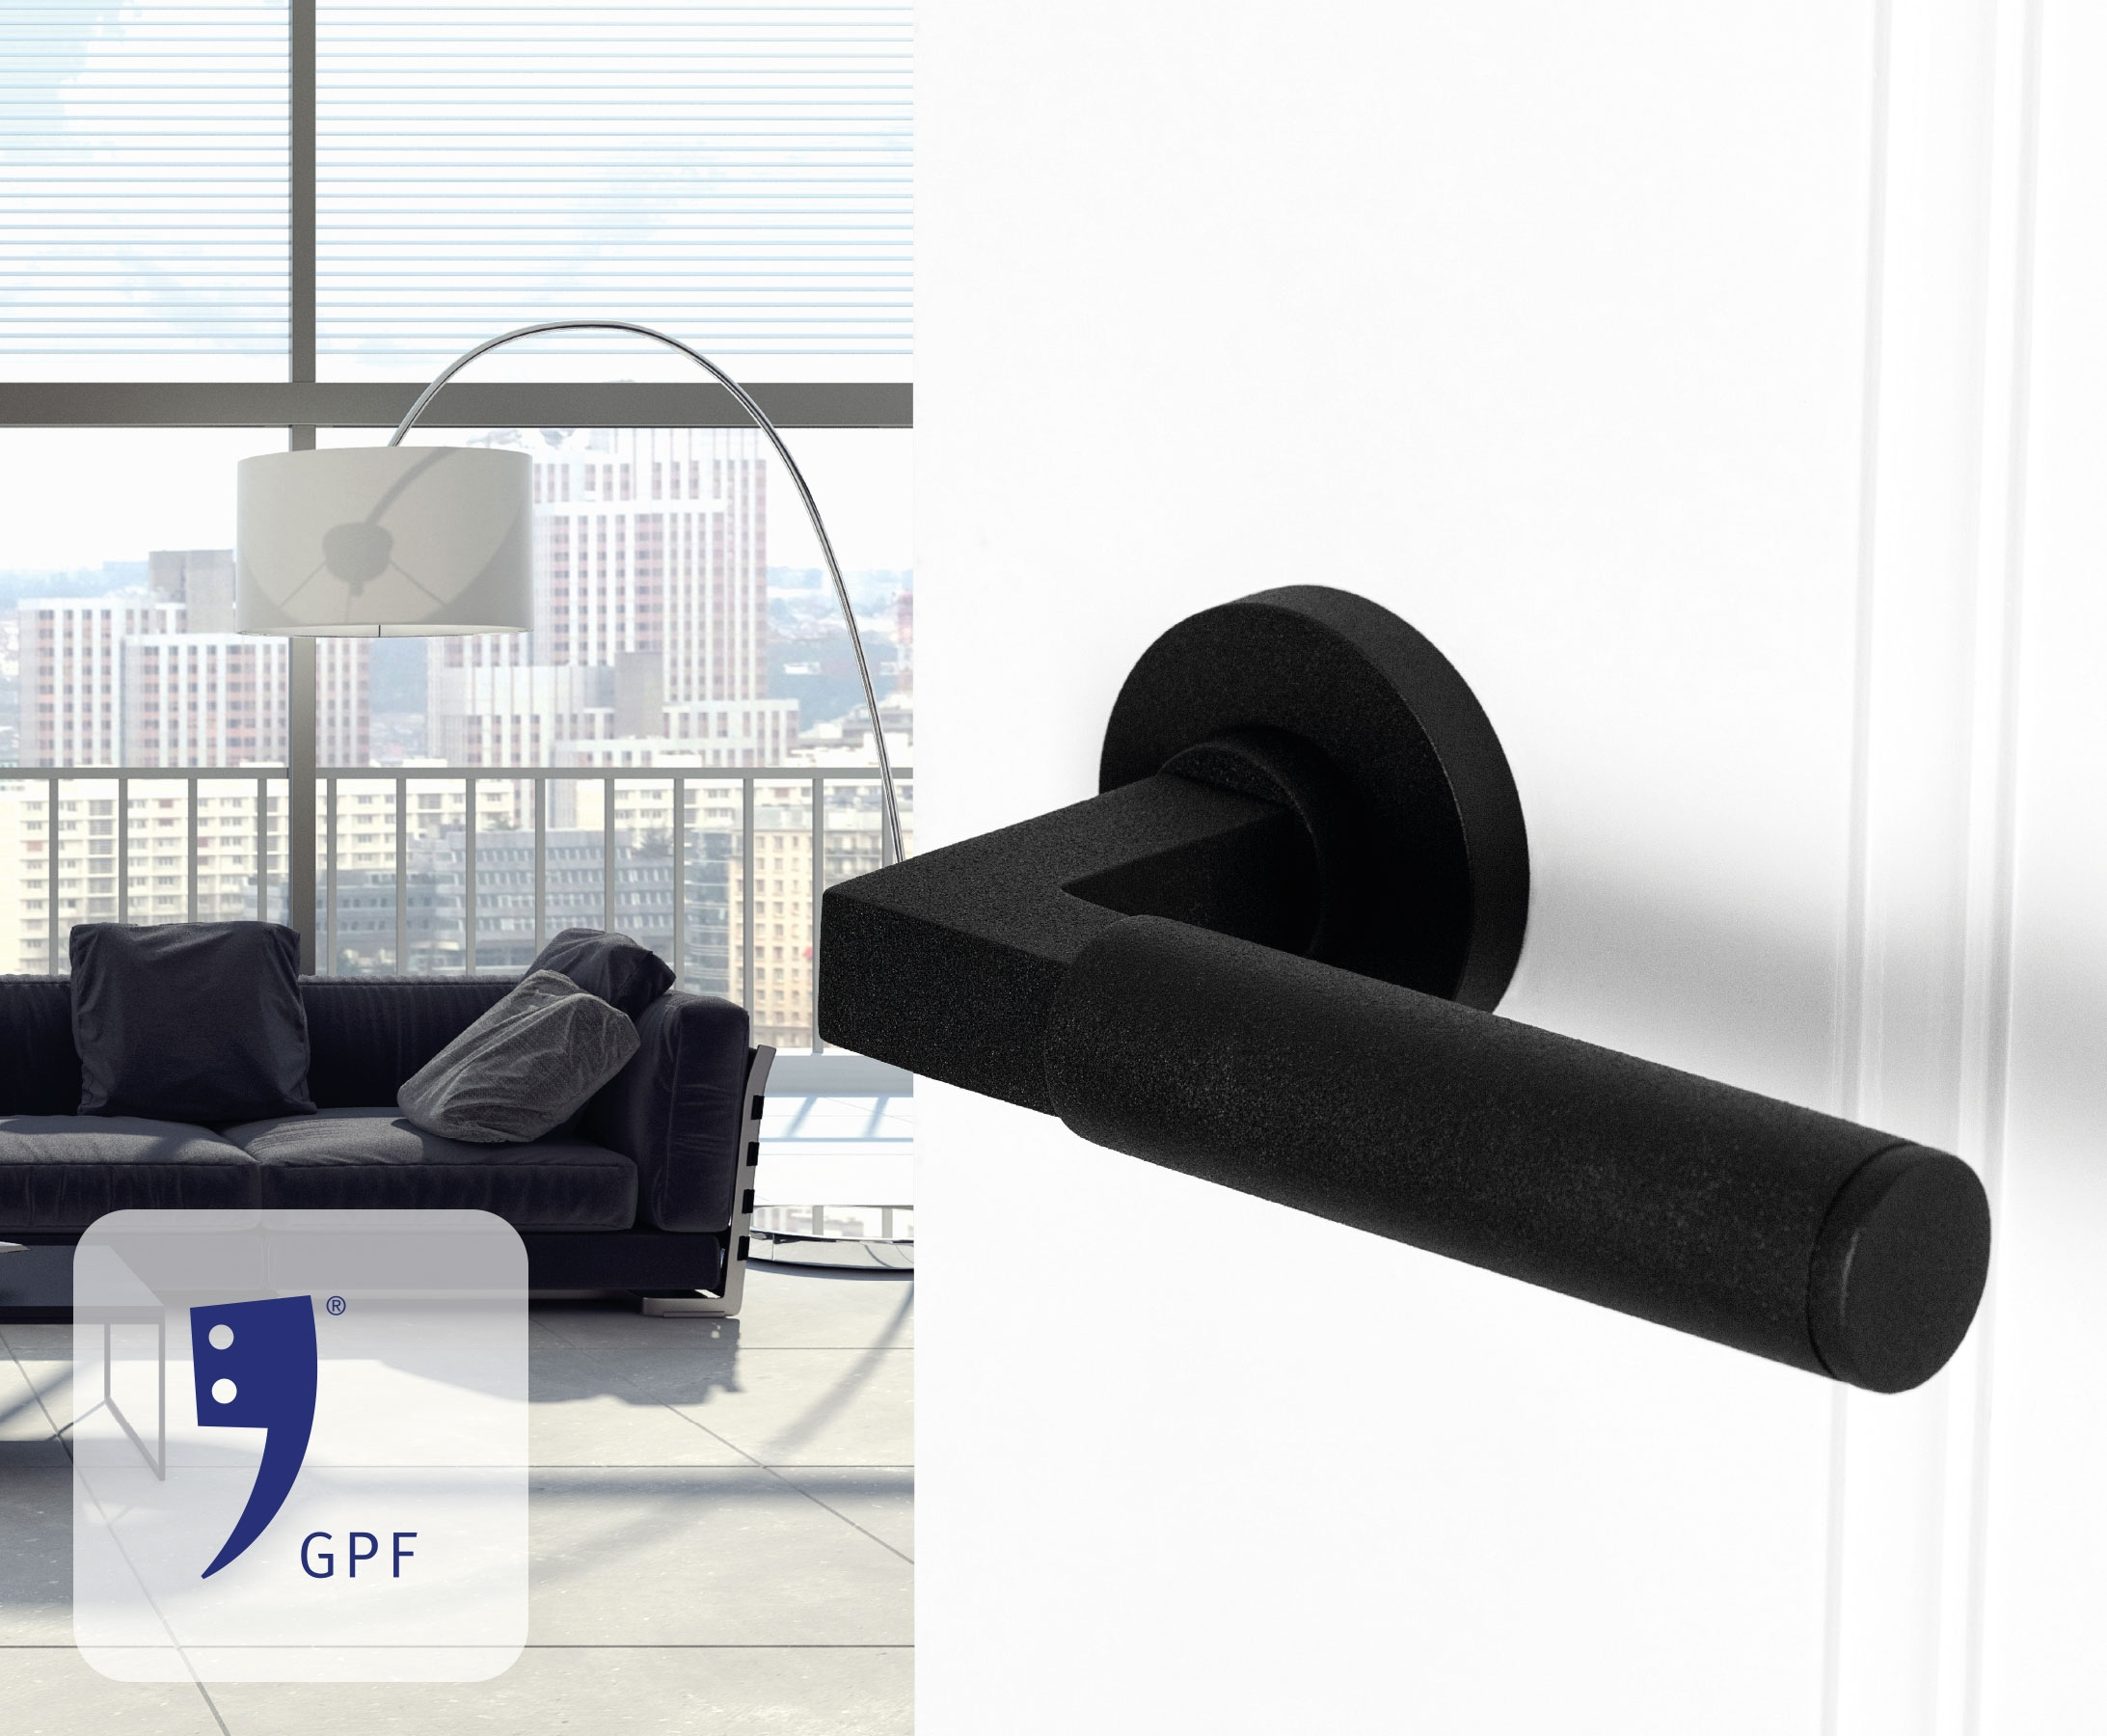 GPF building hardware interior with black door handle